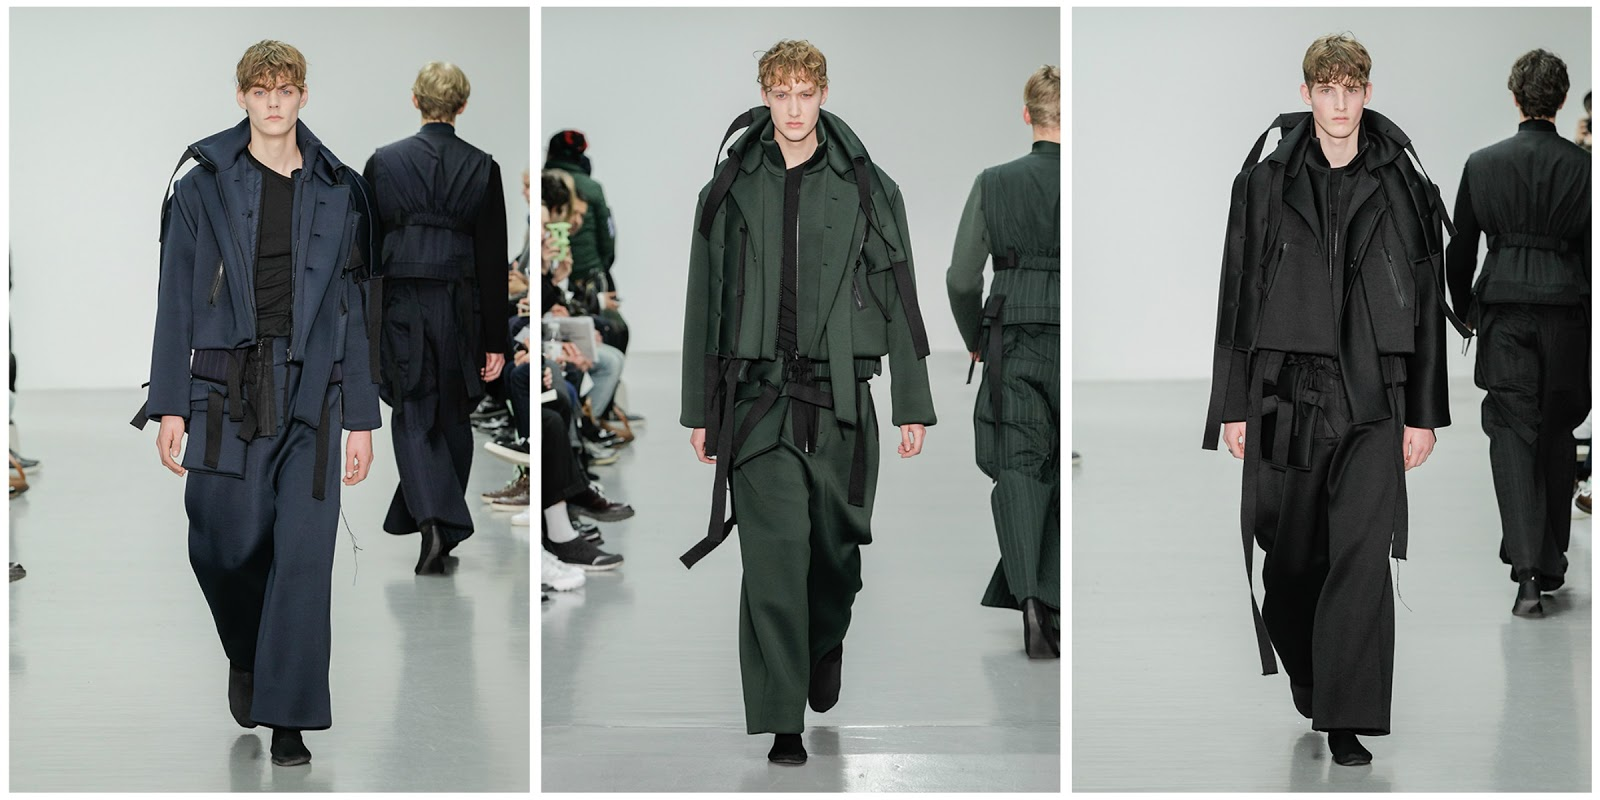 Meet avant-garde brand from London: Craig Green.